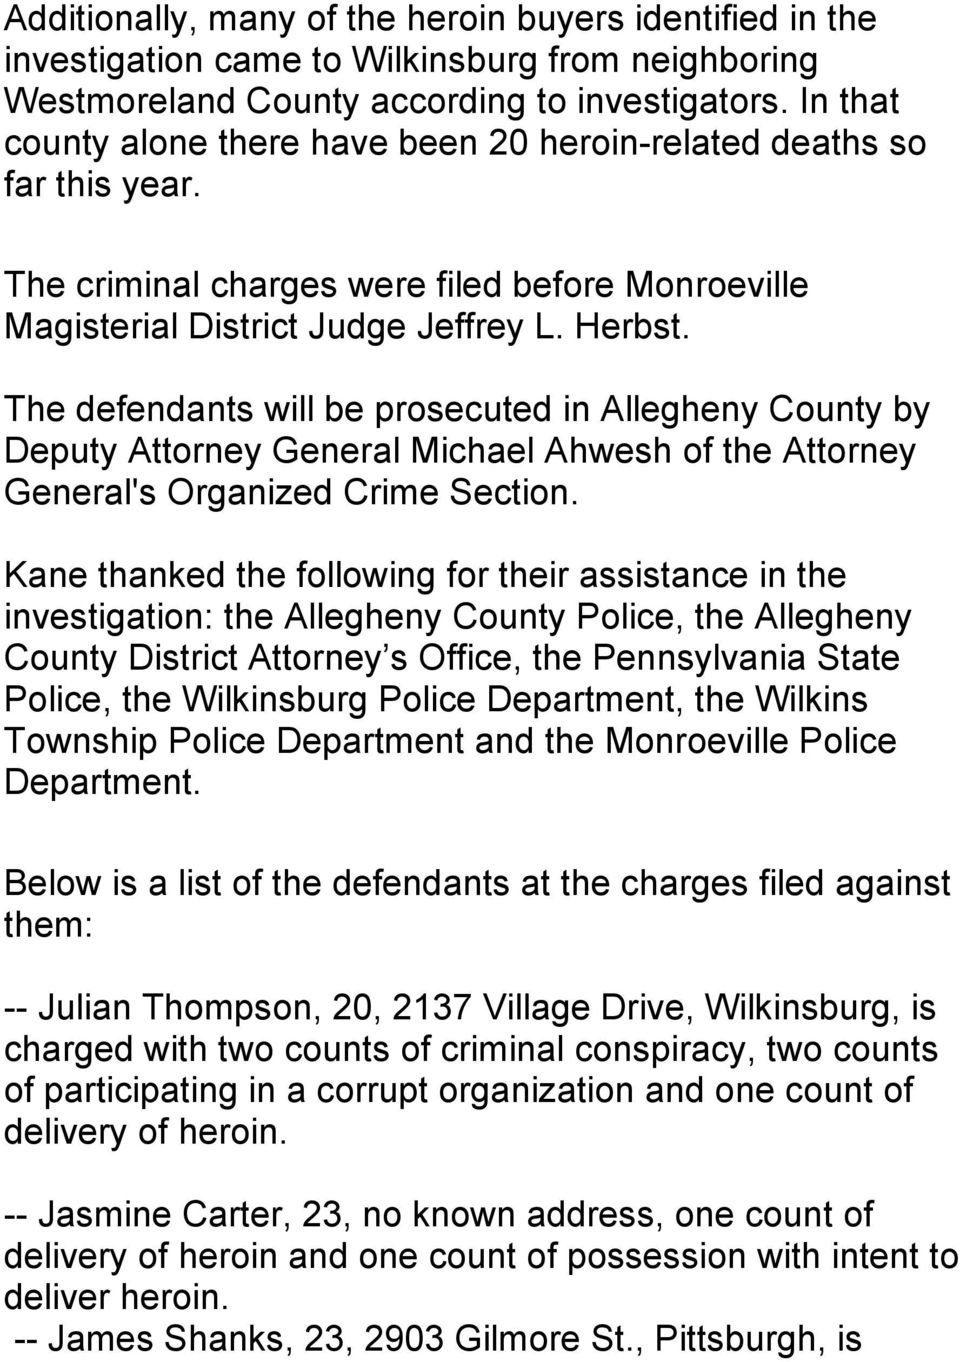 The defendants will be prosecuted in Allegheny County by Deputy Attorney General Michael Ahwesh of the Attorney General's Organized Crime Section.